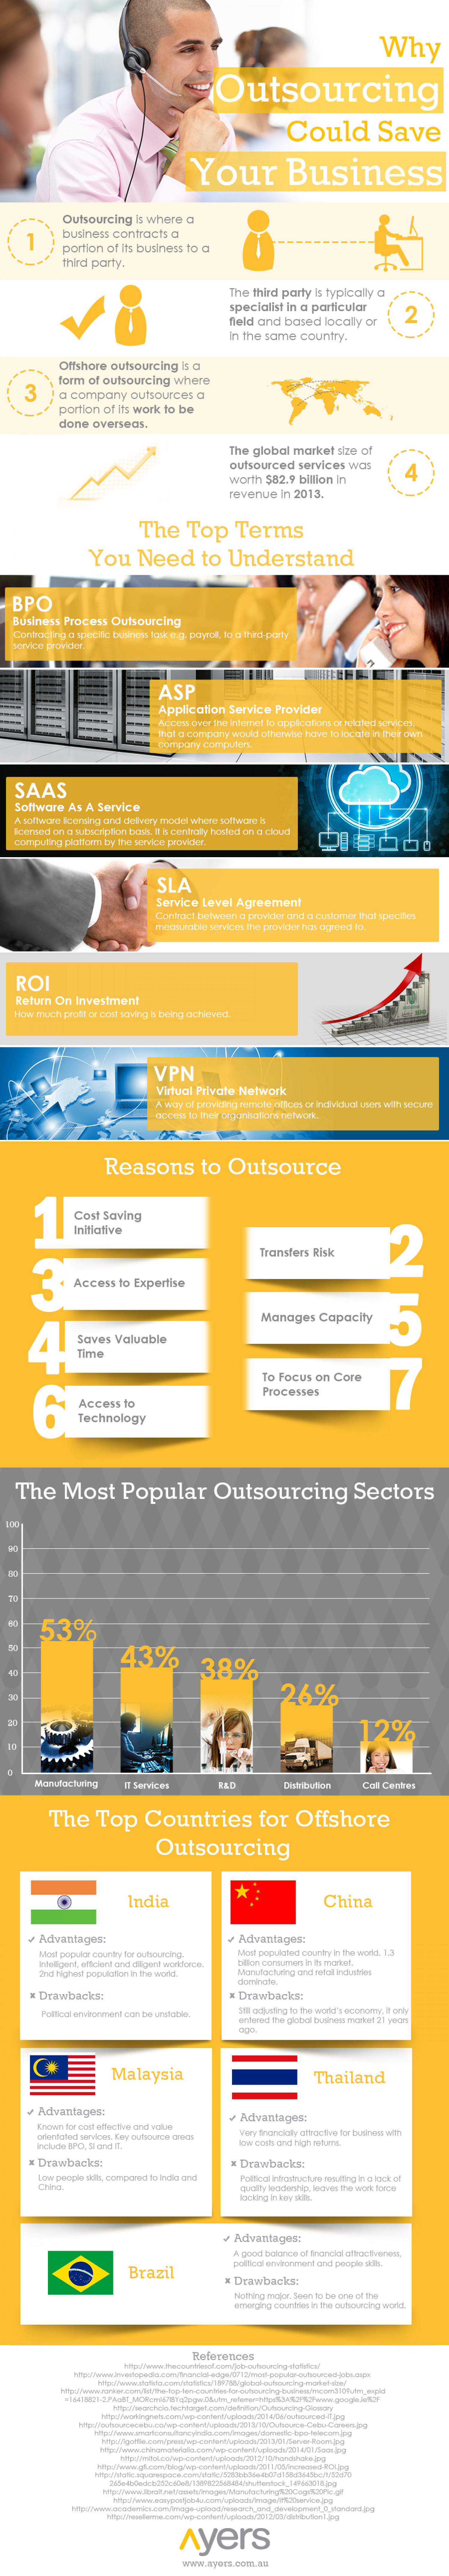 Why Outsourcing Could Save Your Business Infographic